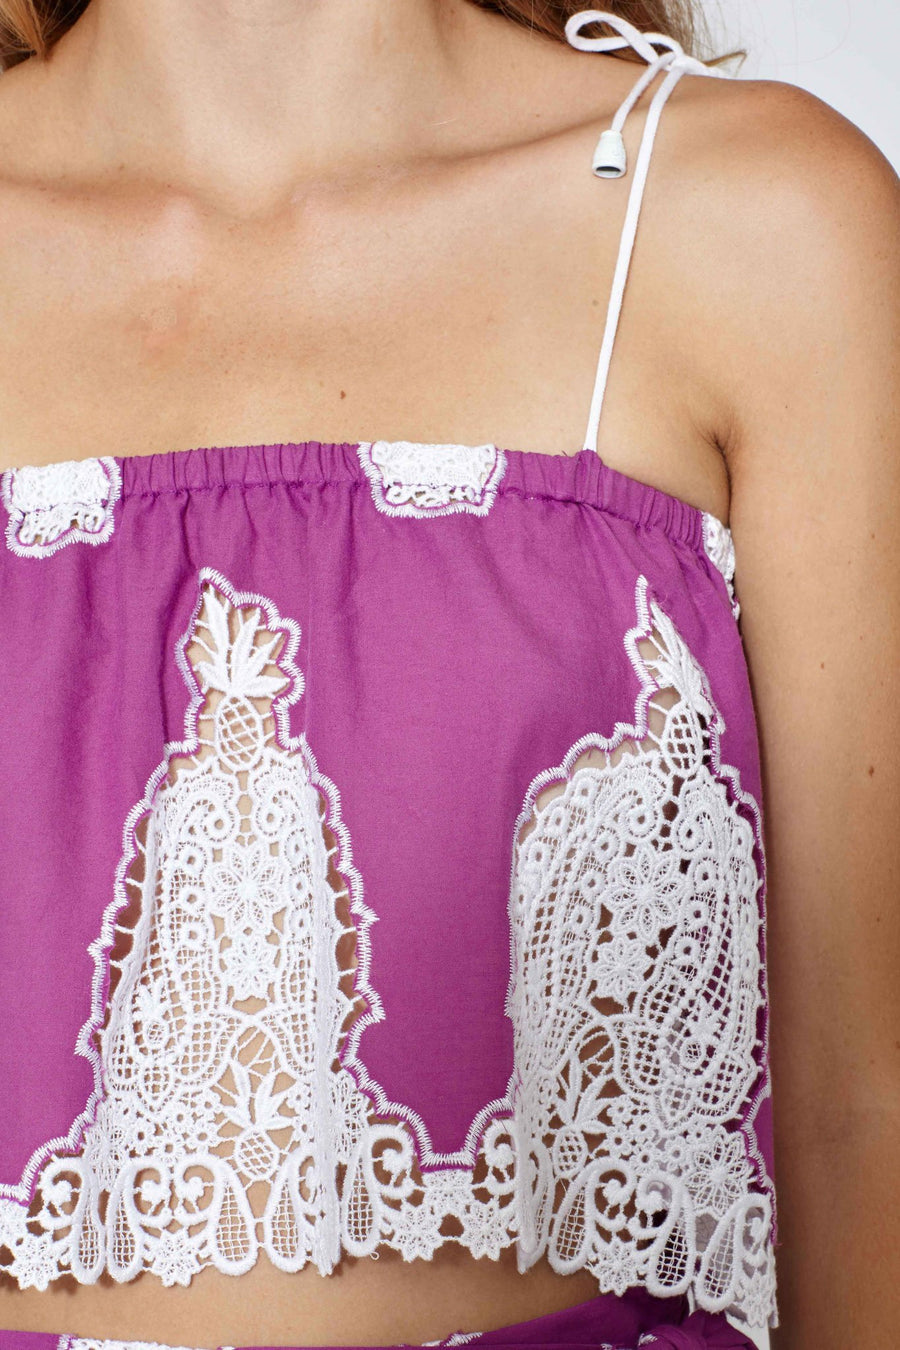 This is a detail photo of a purple cotton crop top with white lace embroidery and white tie straps. Embroidery is paisley-inspired and features a small pineapple.